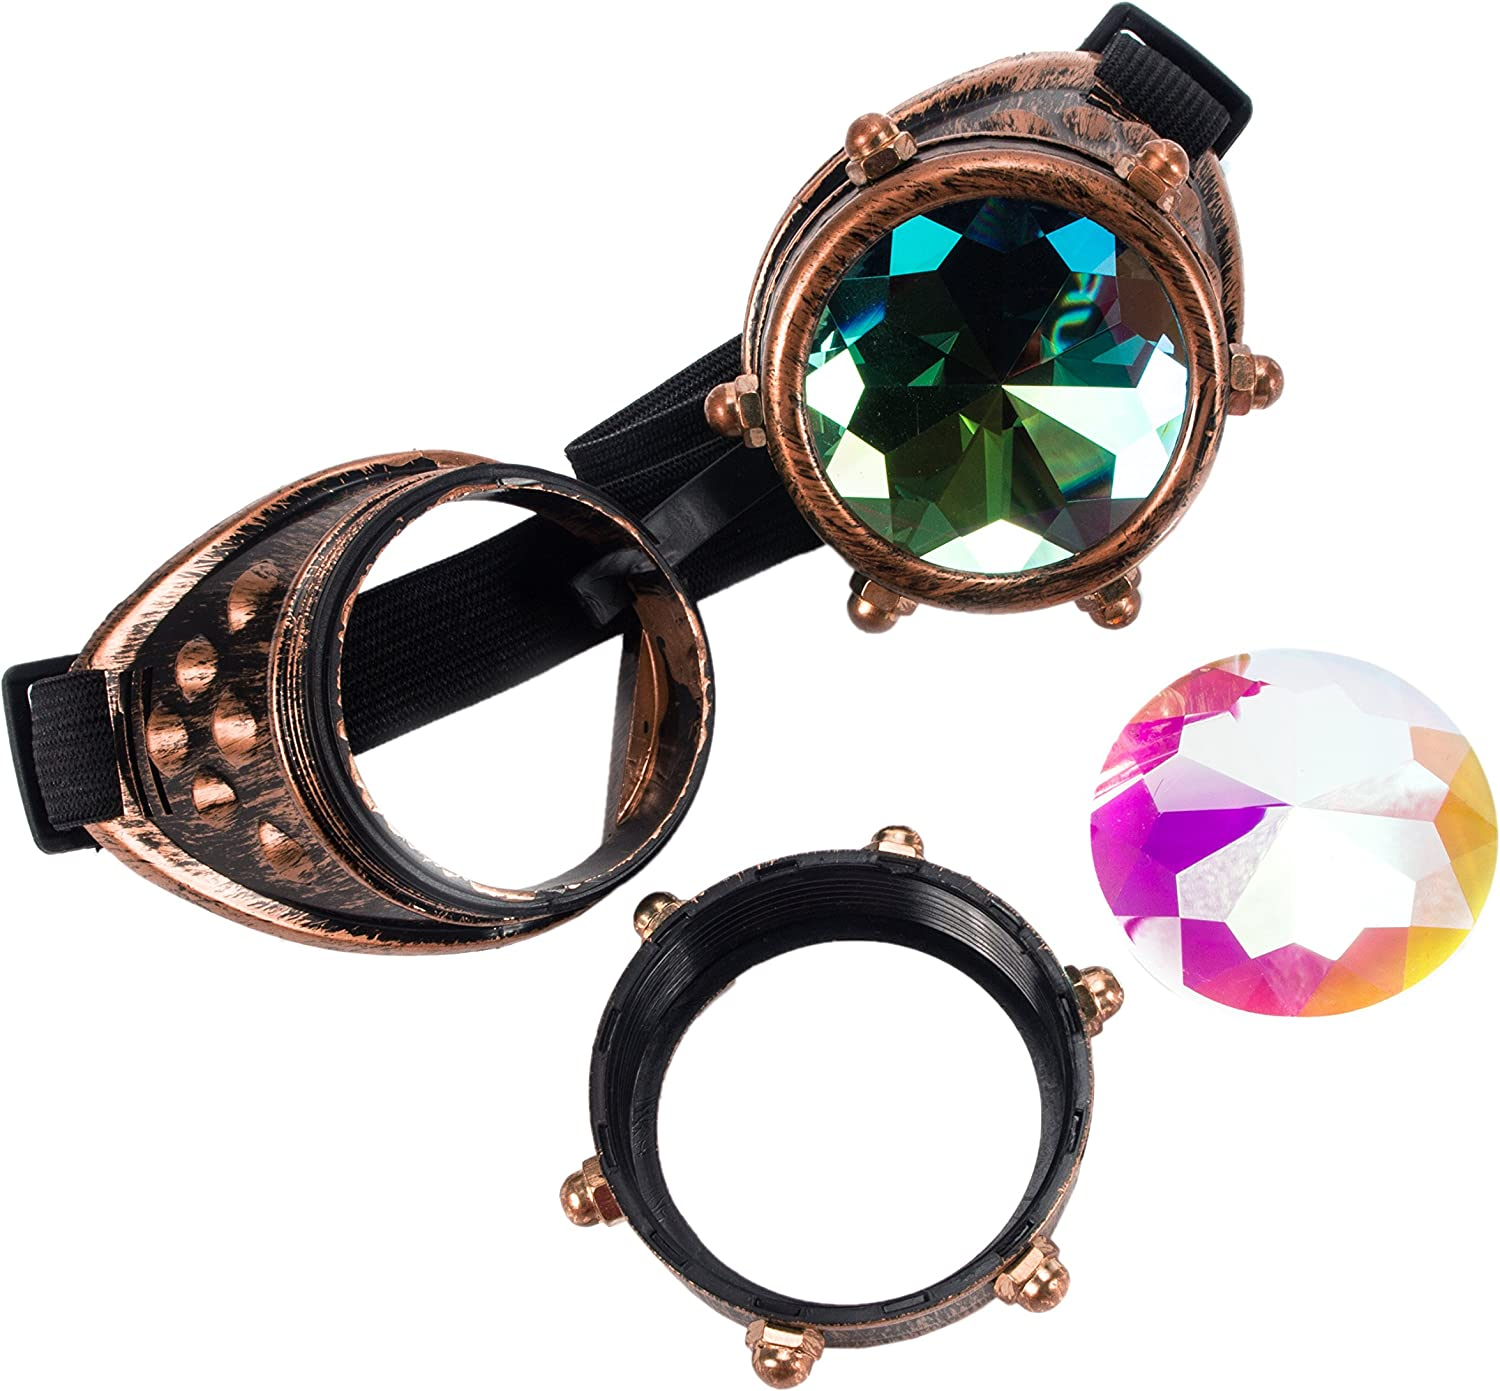 Kaleidoscope Steampunk Rave OFFicial shop Glasses Crystal Memphis Mall with Rainbow Goggles